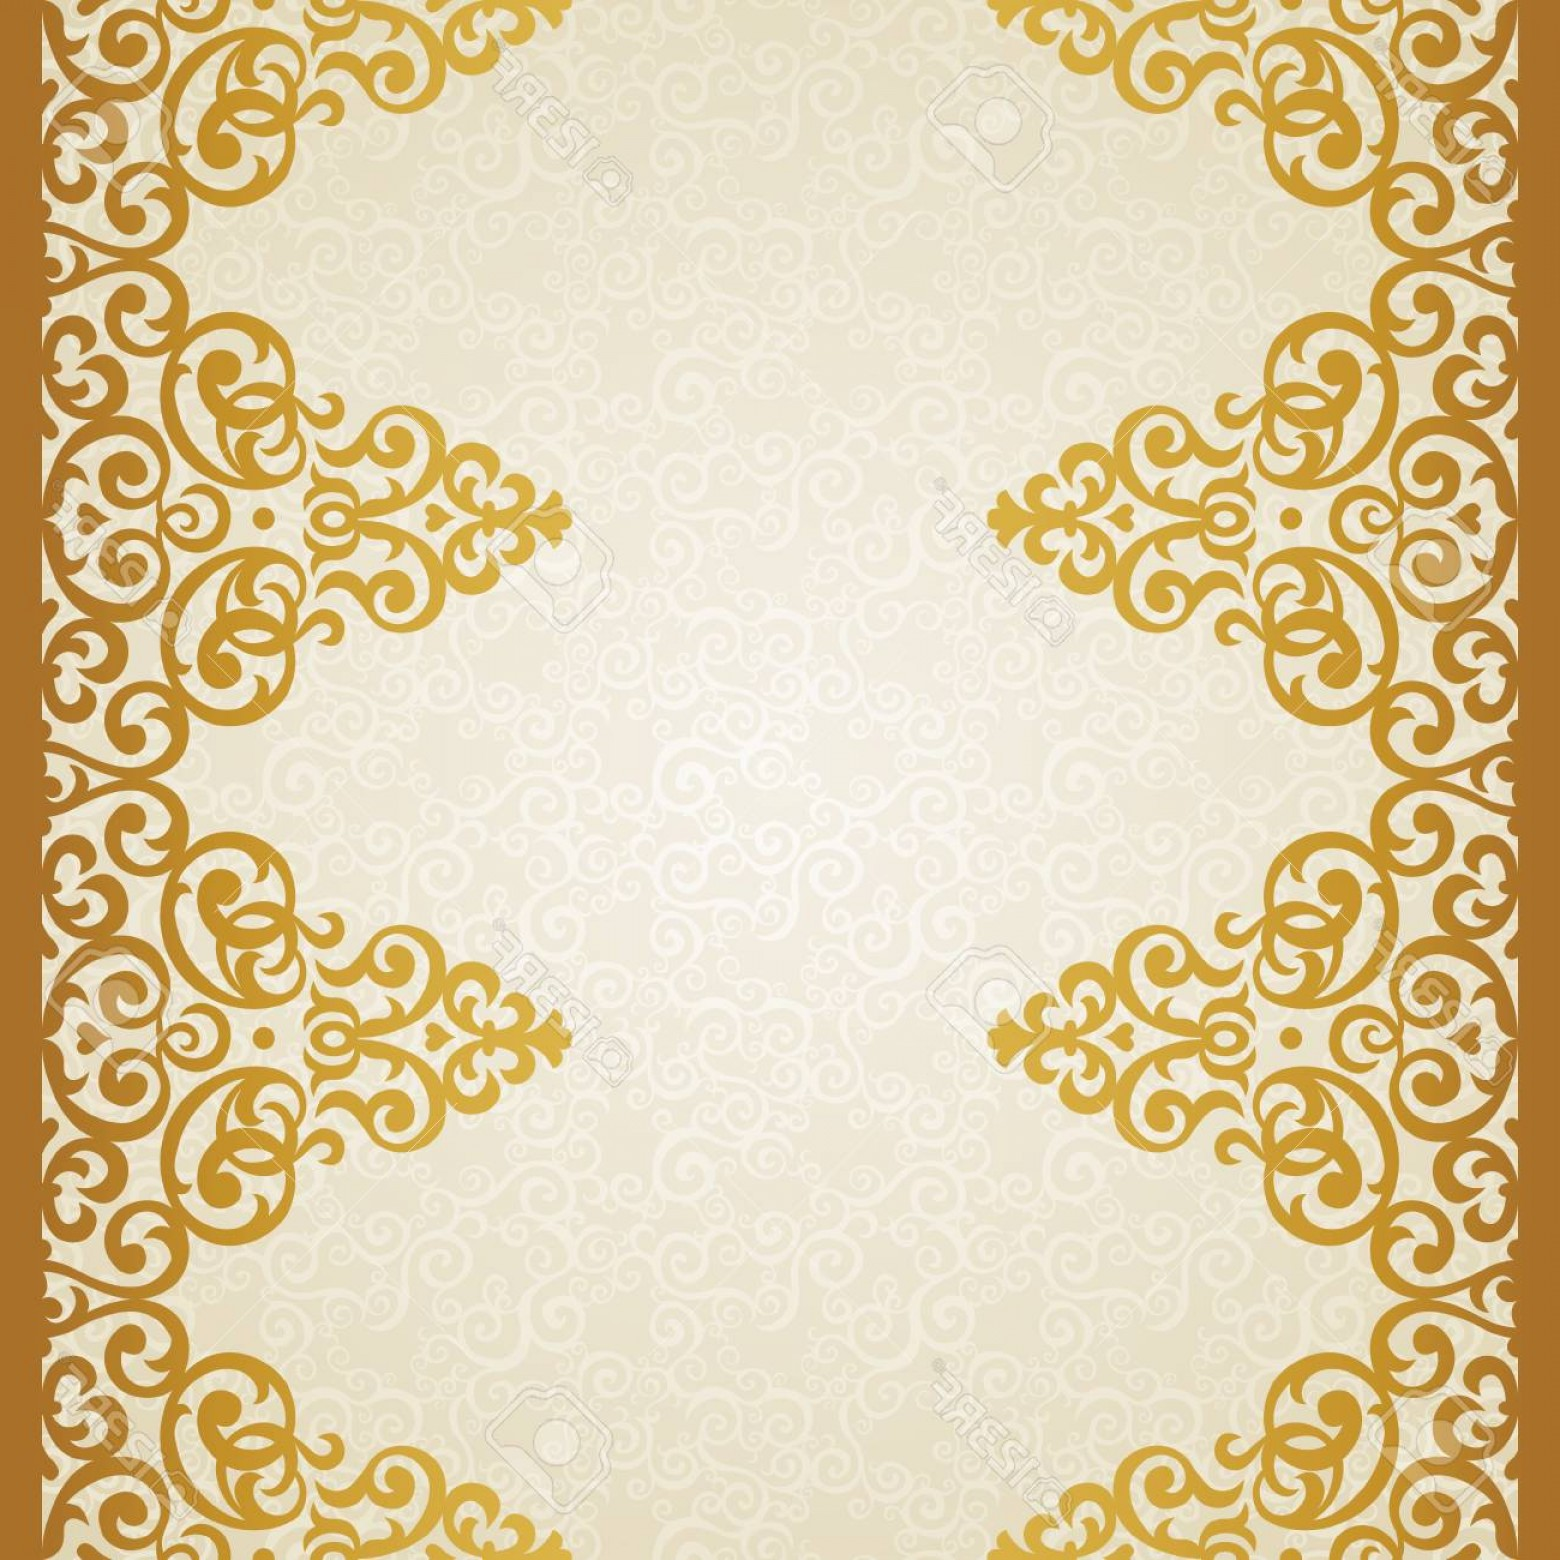 Gold Ornate Borders Vector: Photovector Ornate Border In Victorian Style Golden Floral Element For Design And Place For Text Ornament